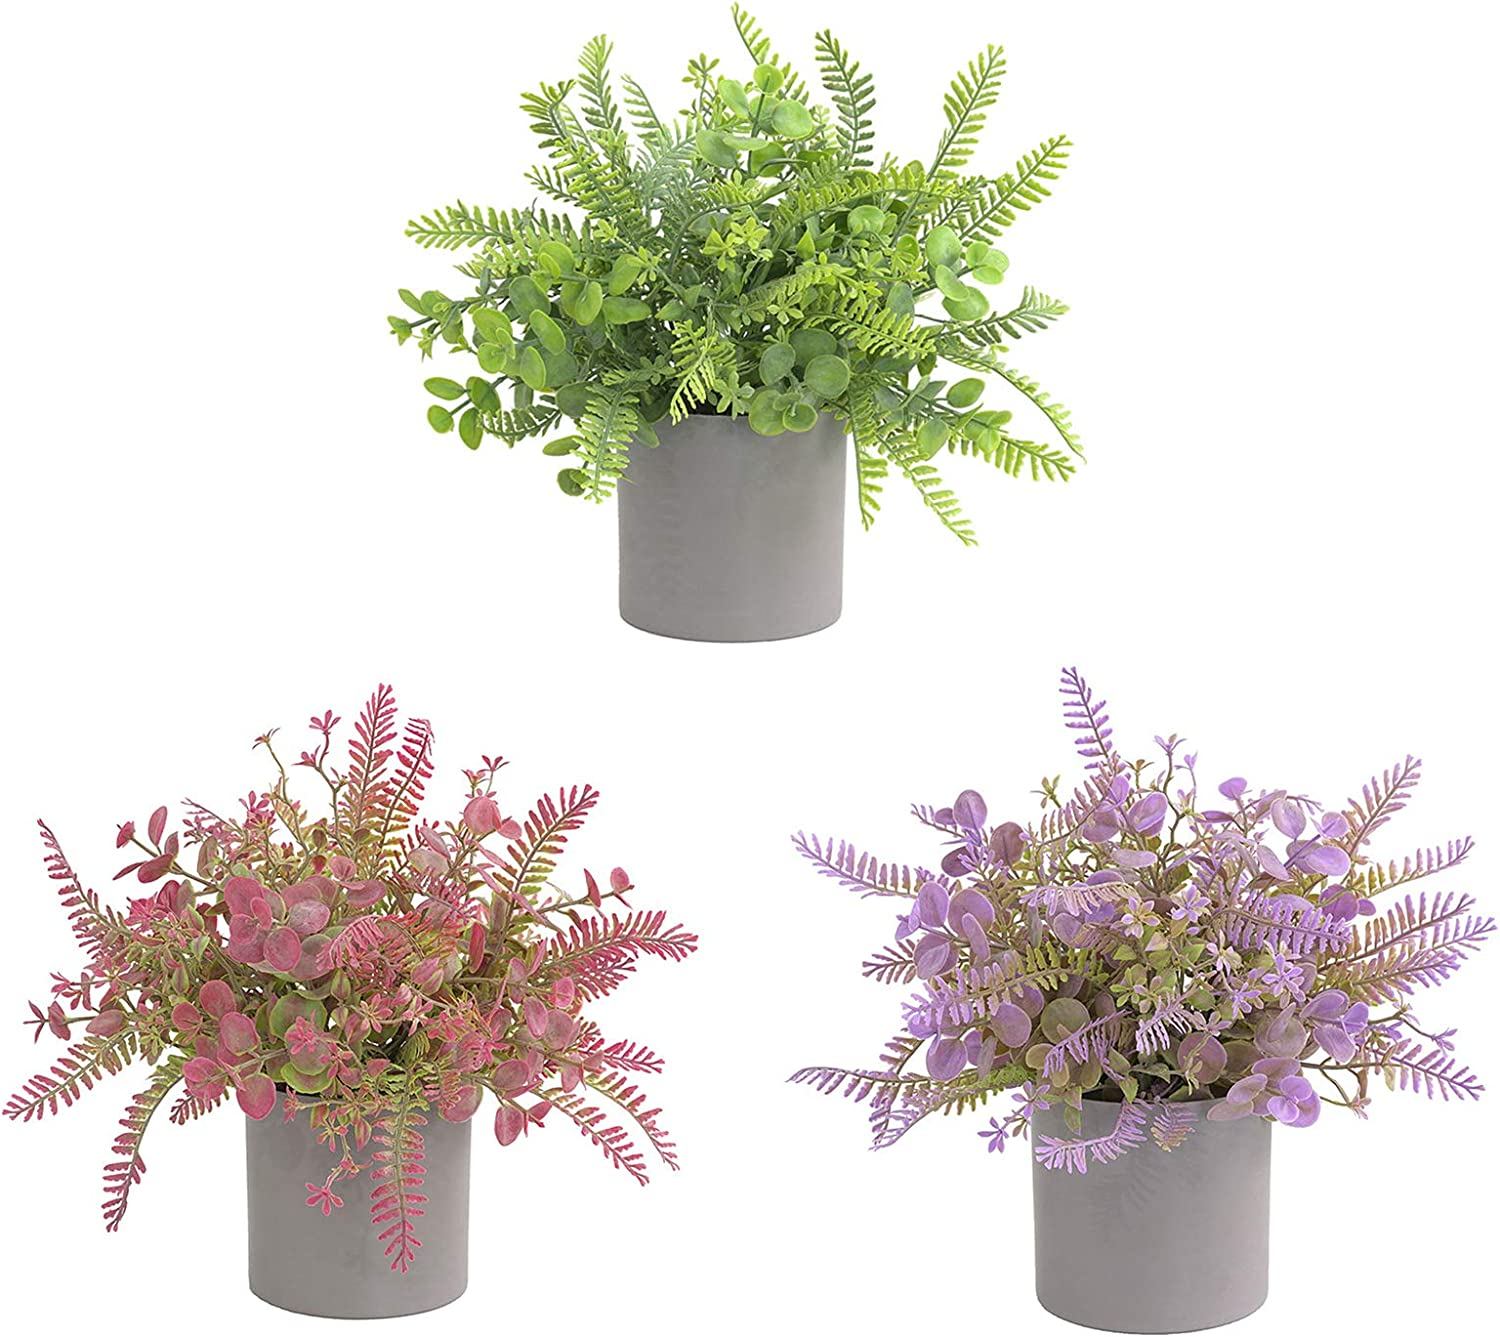 GREENSTORE 3PCS Small Potted In a popularity Artificial Over item handling ☆ Eucalypt Plants Plastic